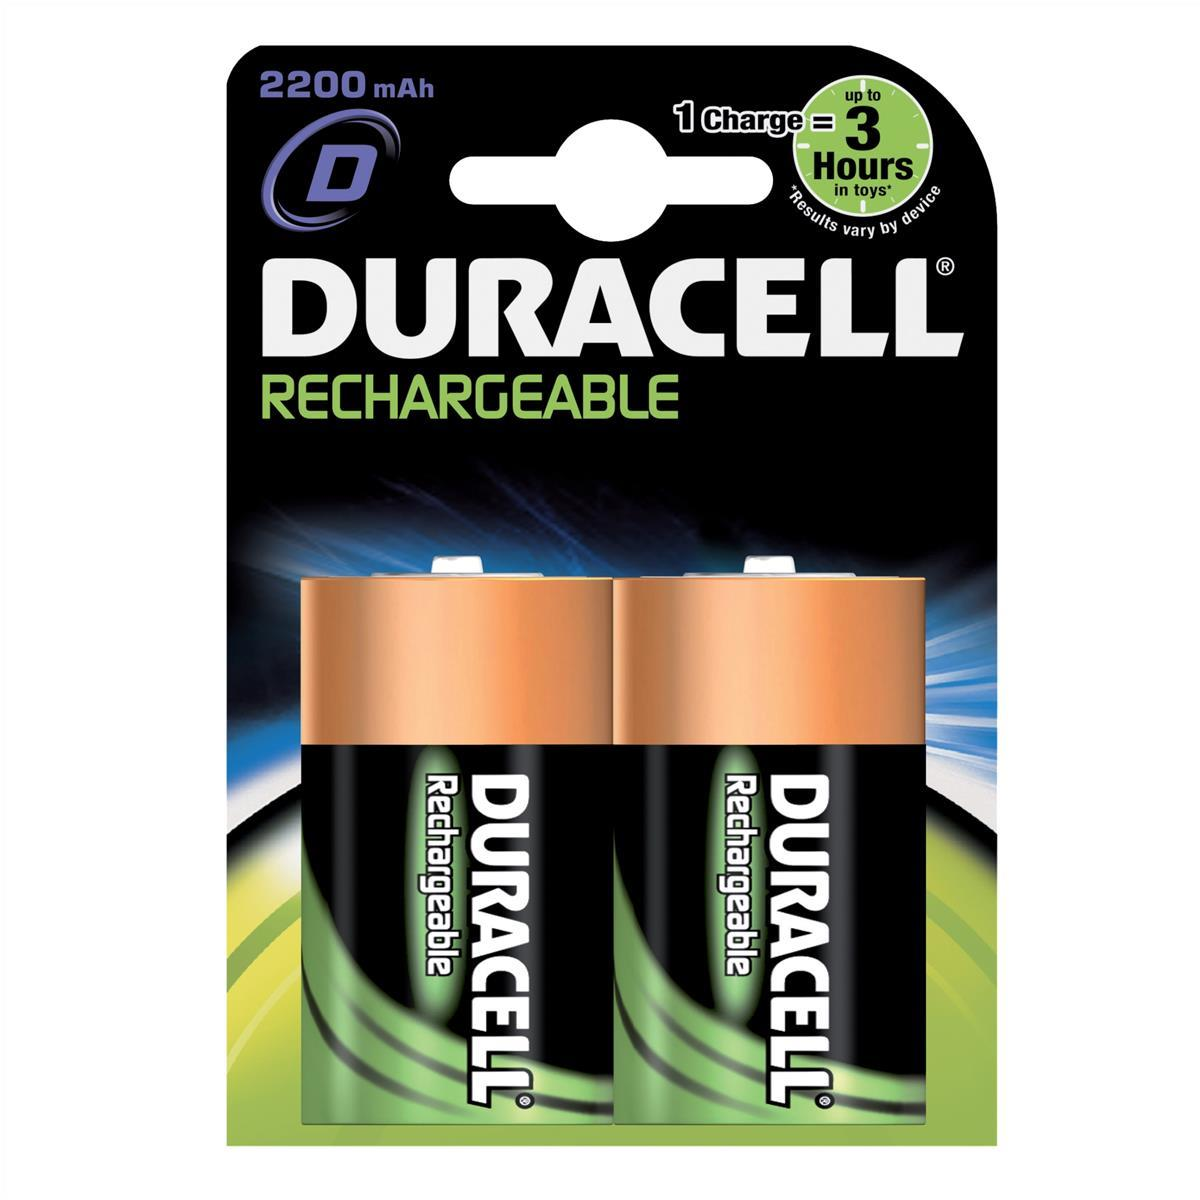 Image for Duracell Battery Rechargeable Accu NiMH 2200mAh D Ref 81364737 [Pack 2]